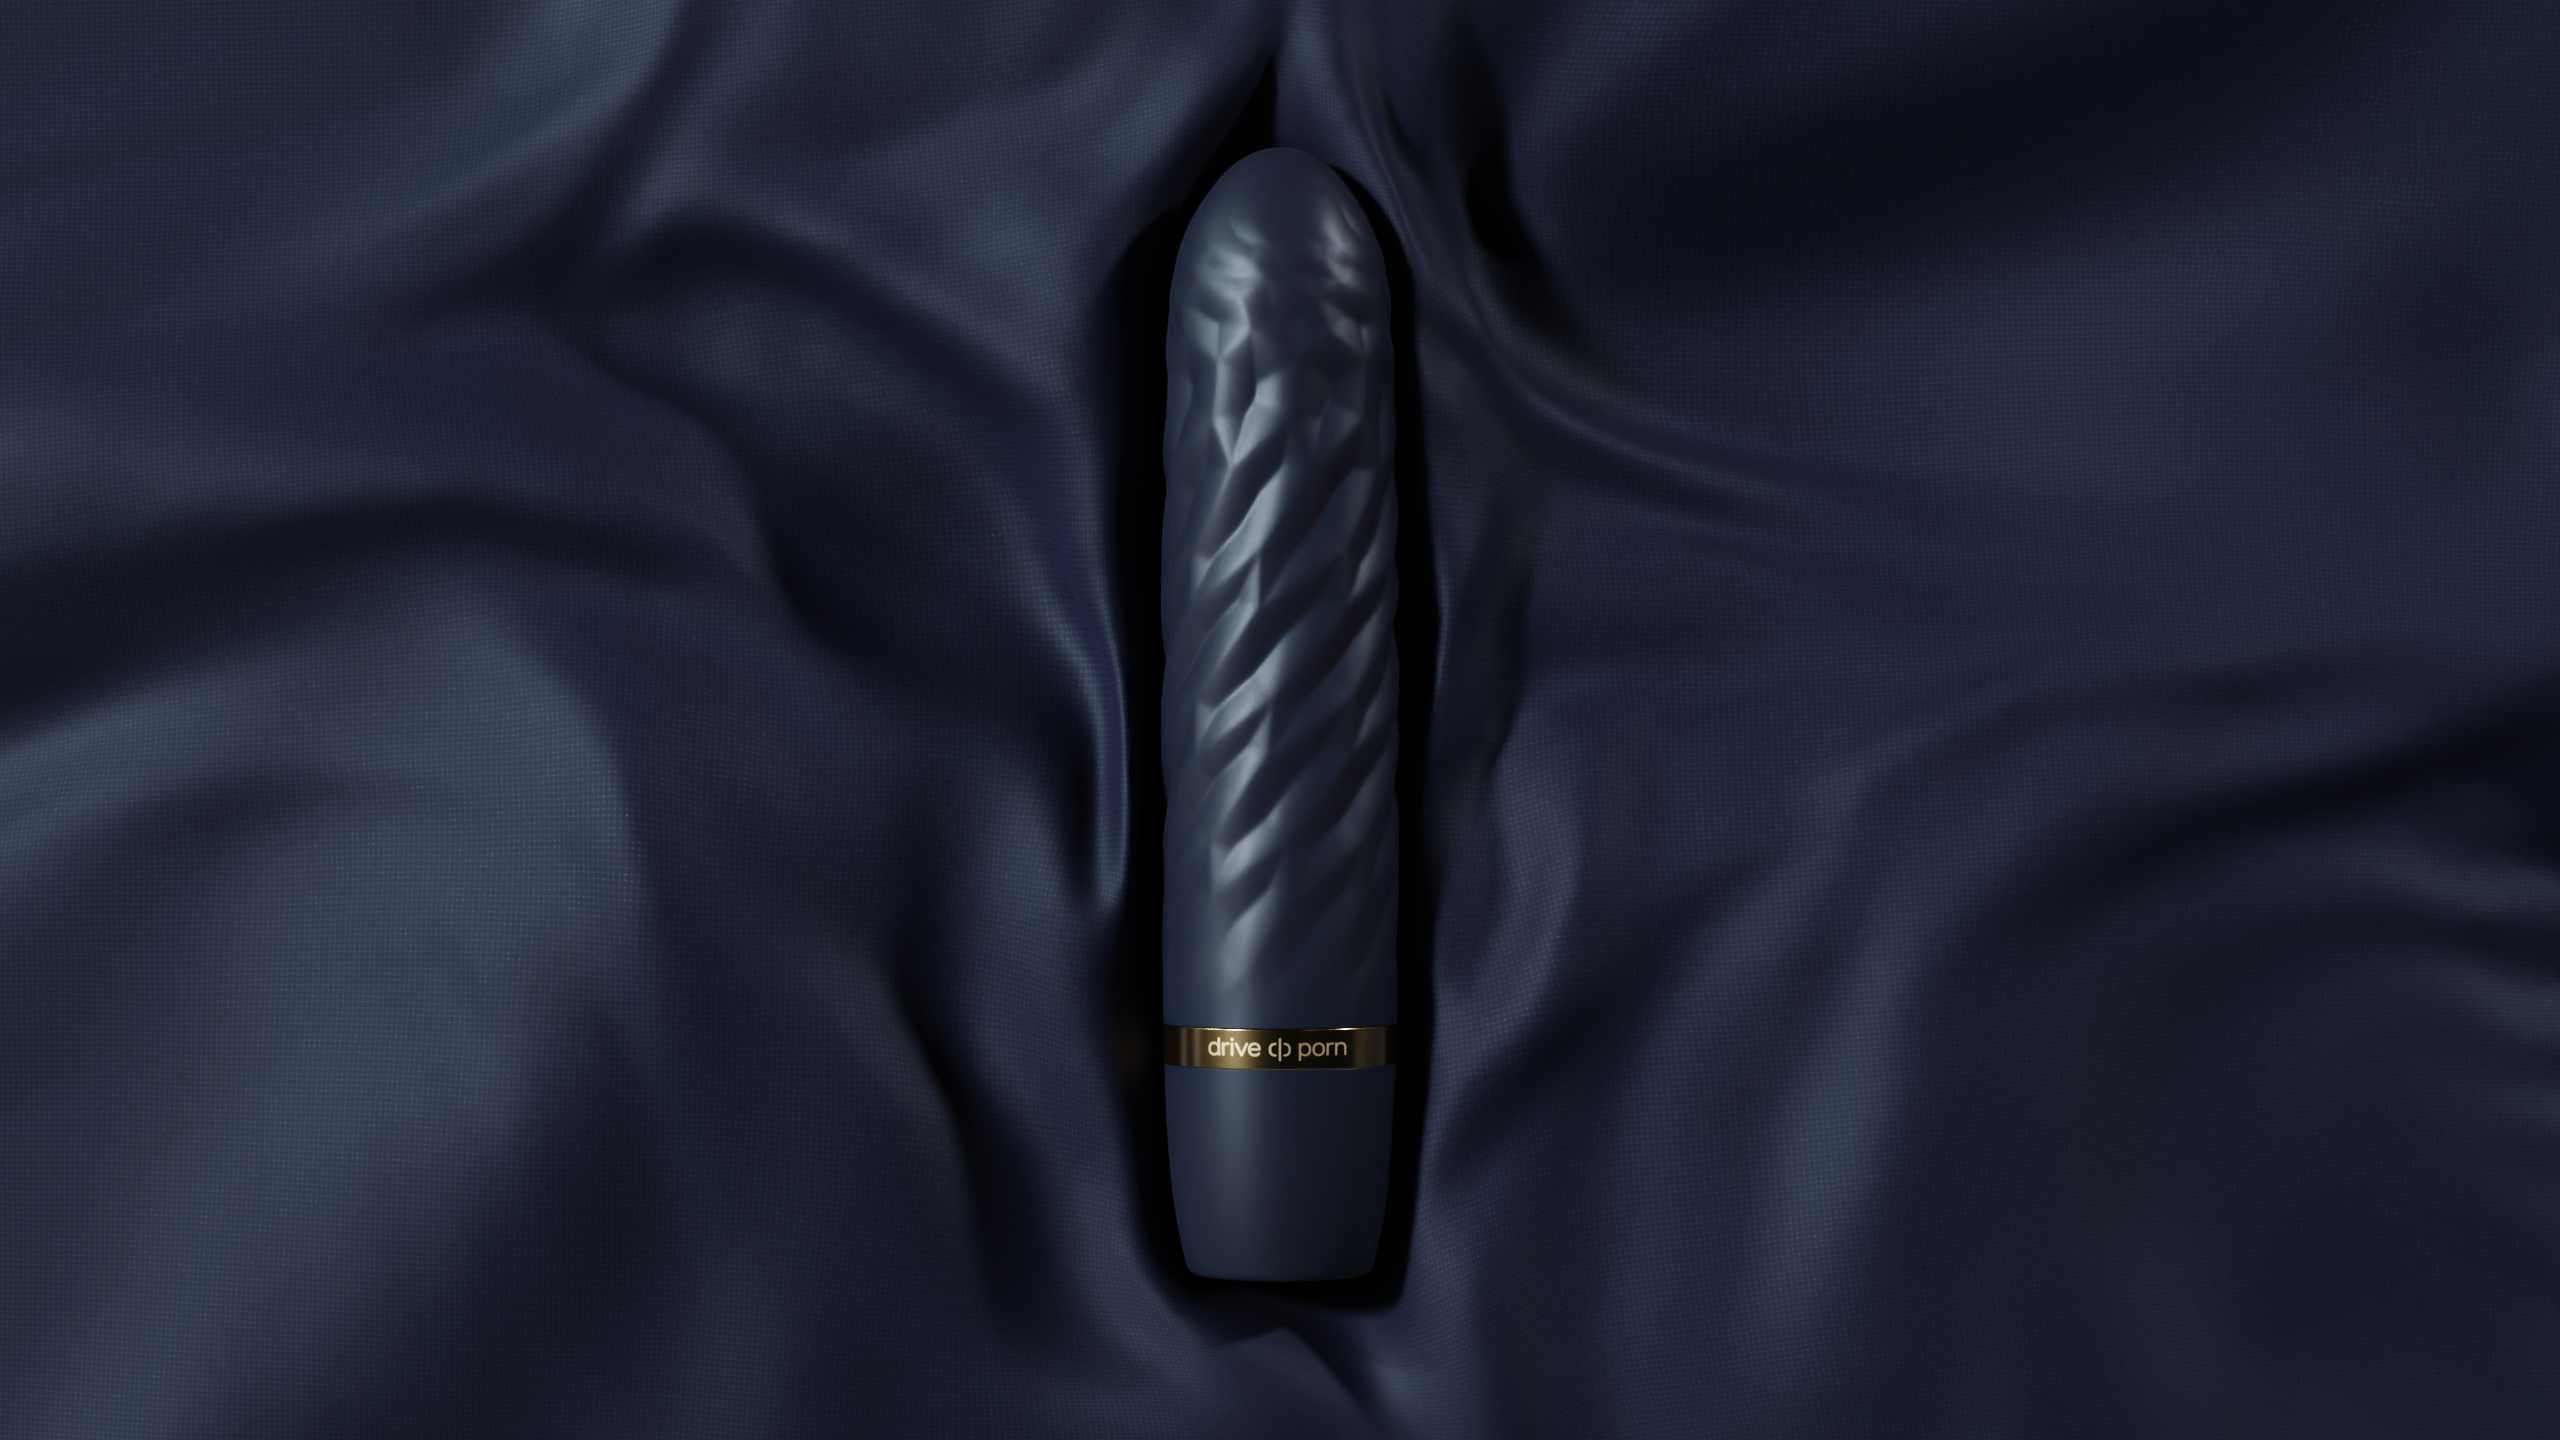 black structured adult toy with golden text lying on marine blue fabric